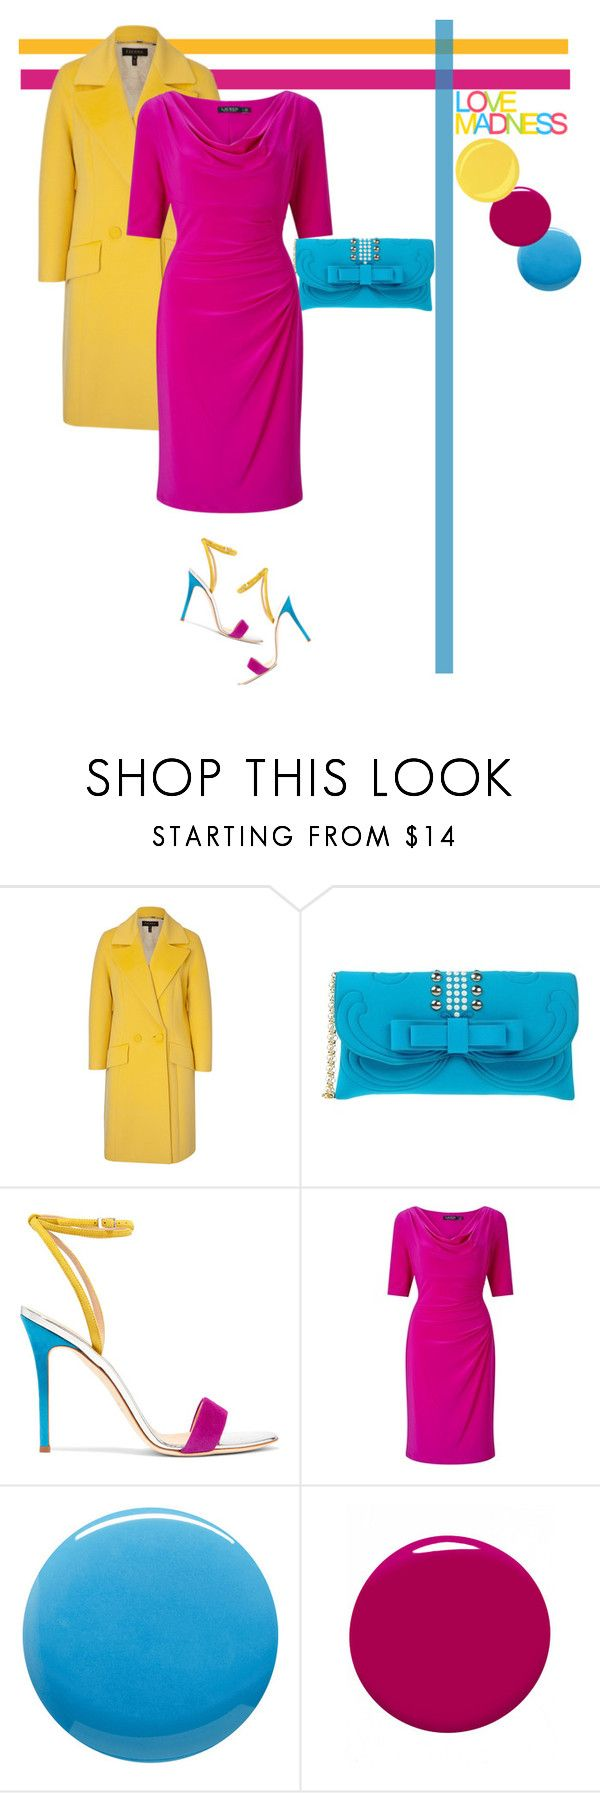 """Colourful"" by southindianmakeup1990 ❤ liked on Polyvore featuring ESCADA, La Fille Des Fleurs, Giuseppe Zanotti, Lauren Ralph Lauren, Lauren B. Beauty, Love Quotes Scarves, Guerlain, fashionset and polyvoreeditorial"